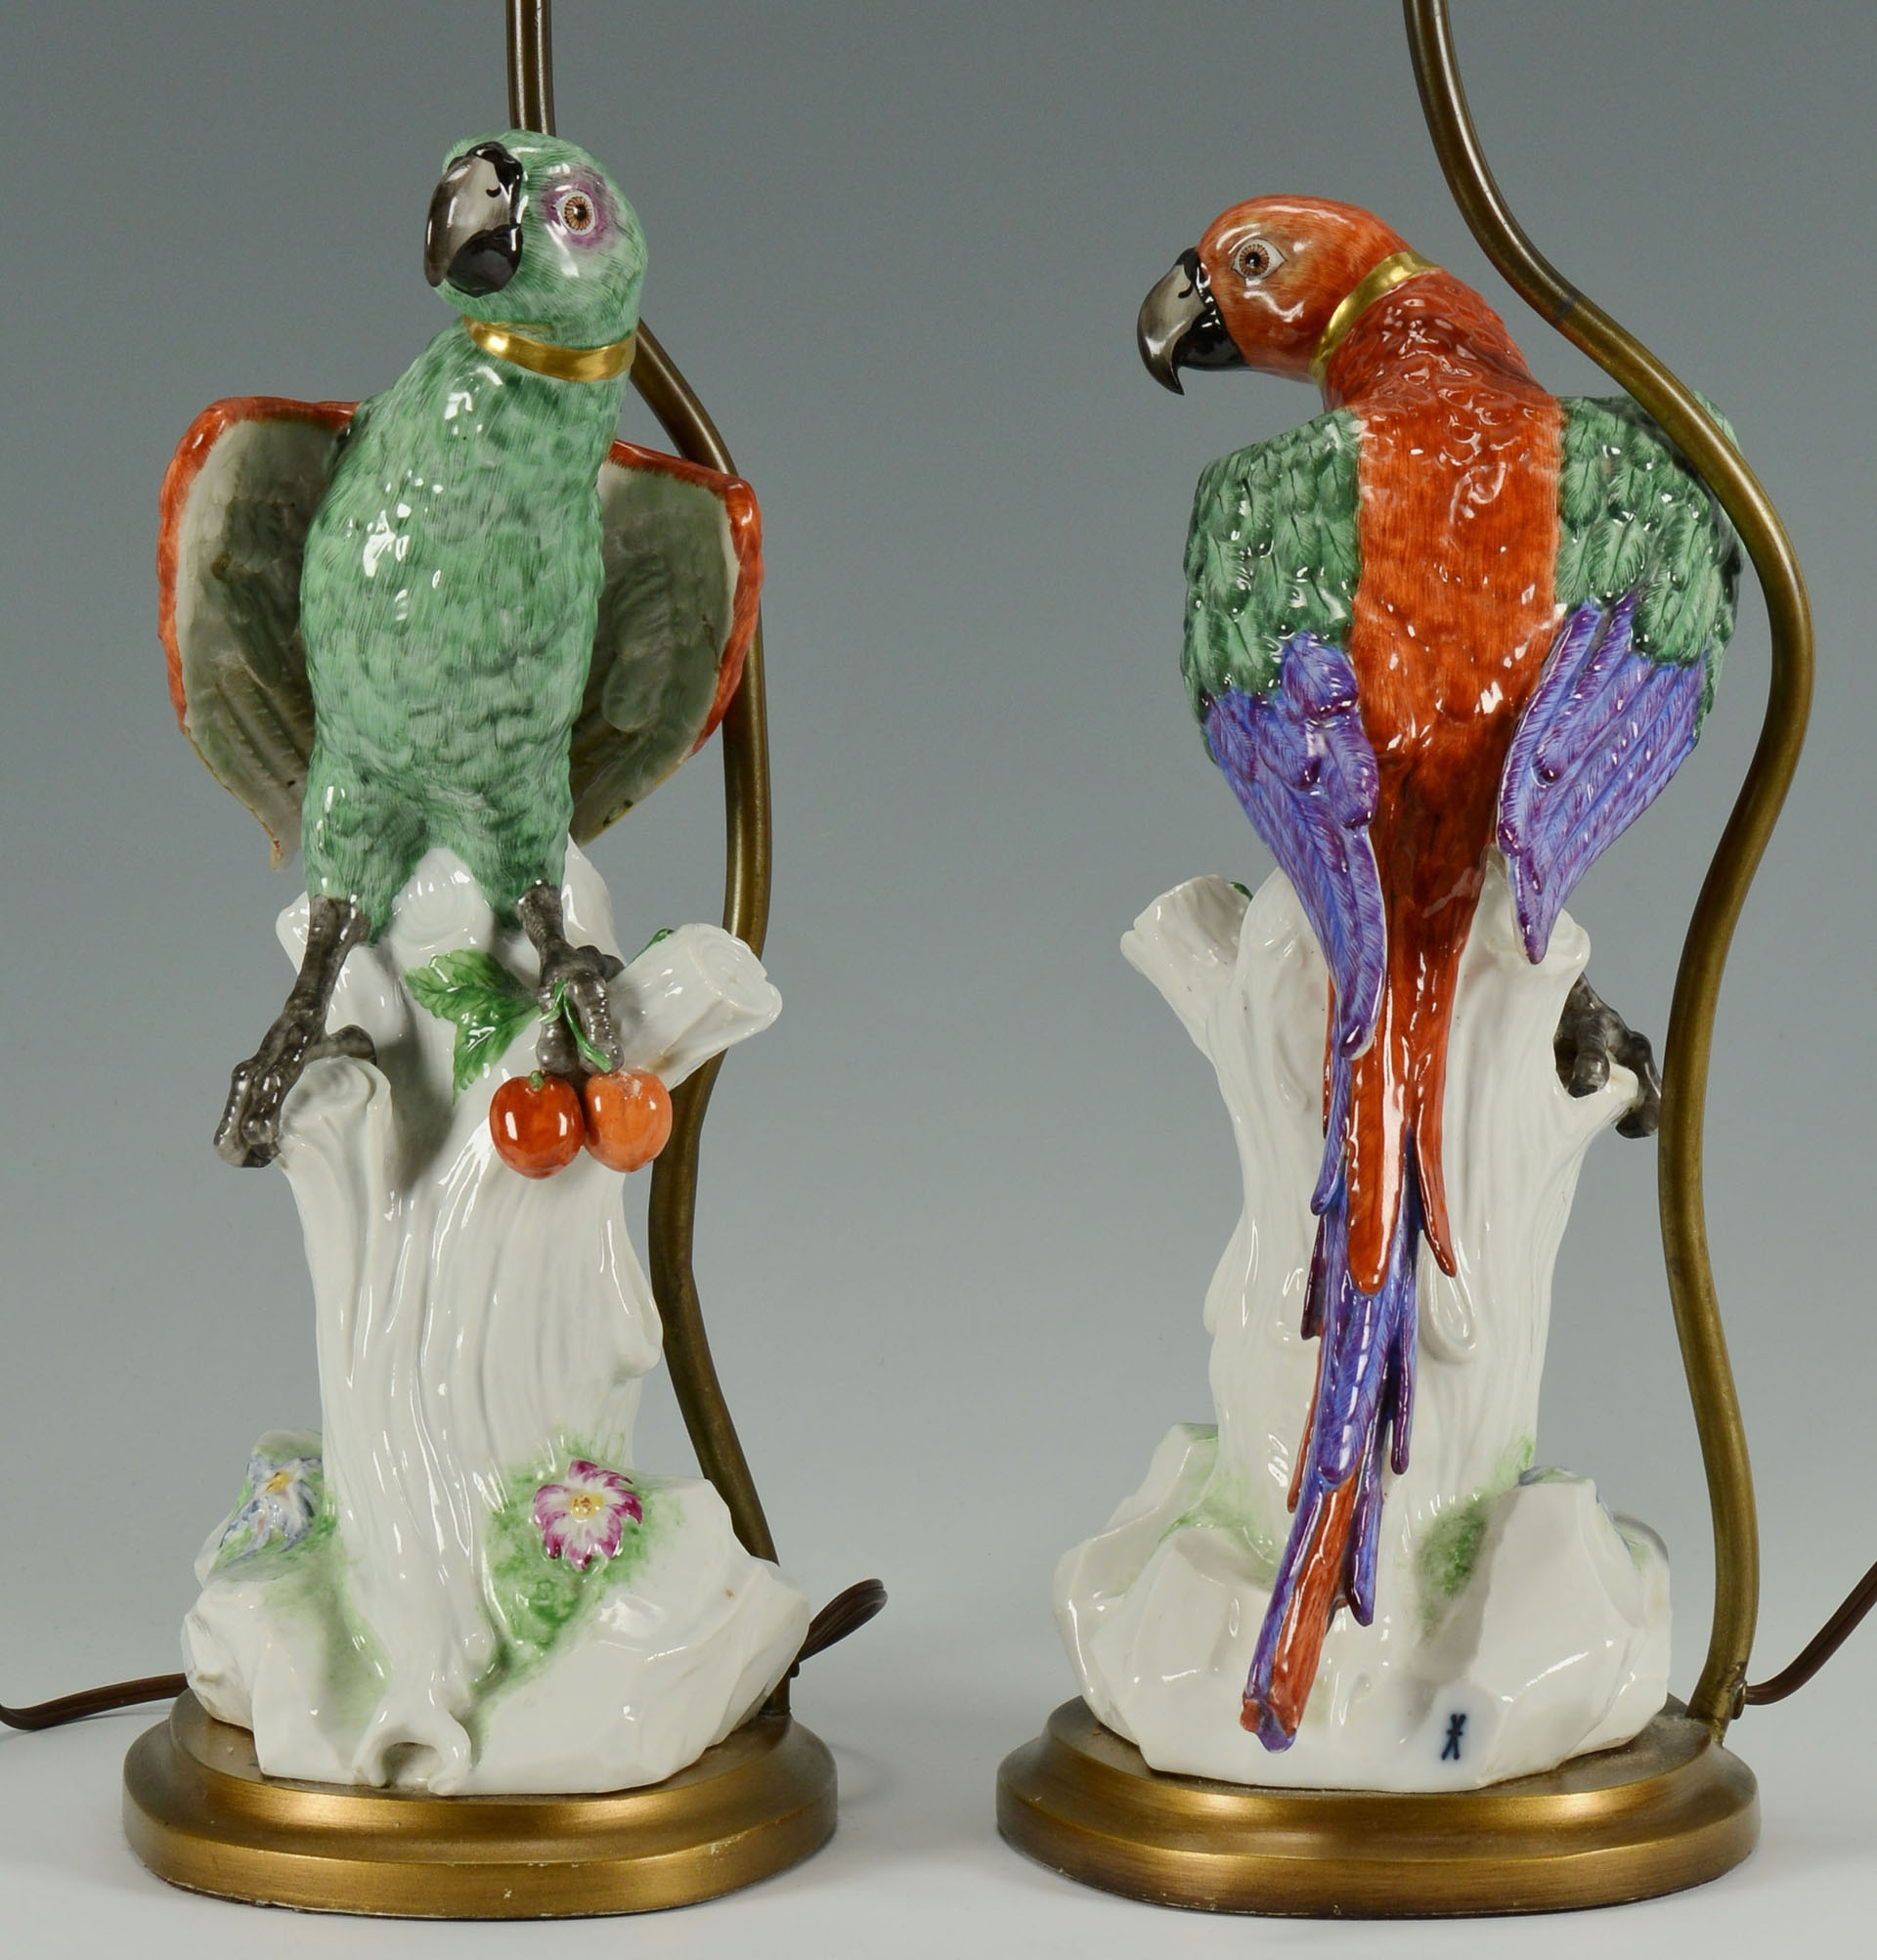 Lot 258 Pair Meissen Style Porcelain Parrot Lamps